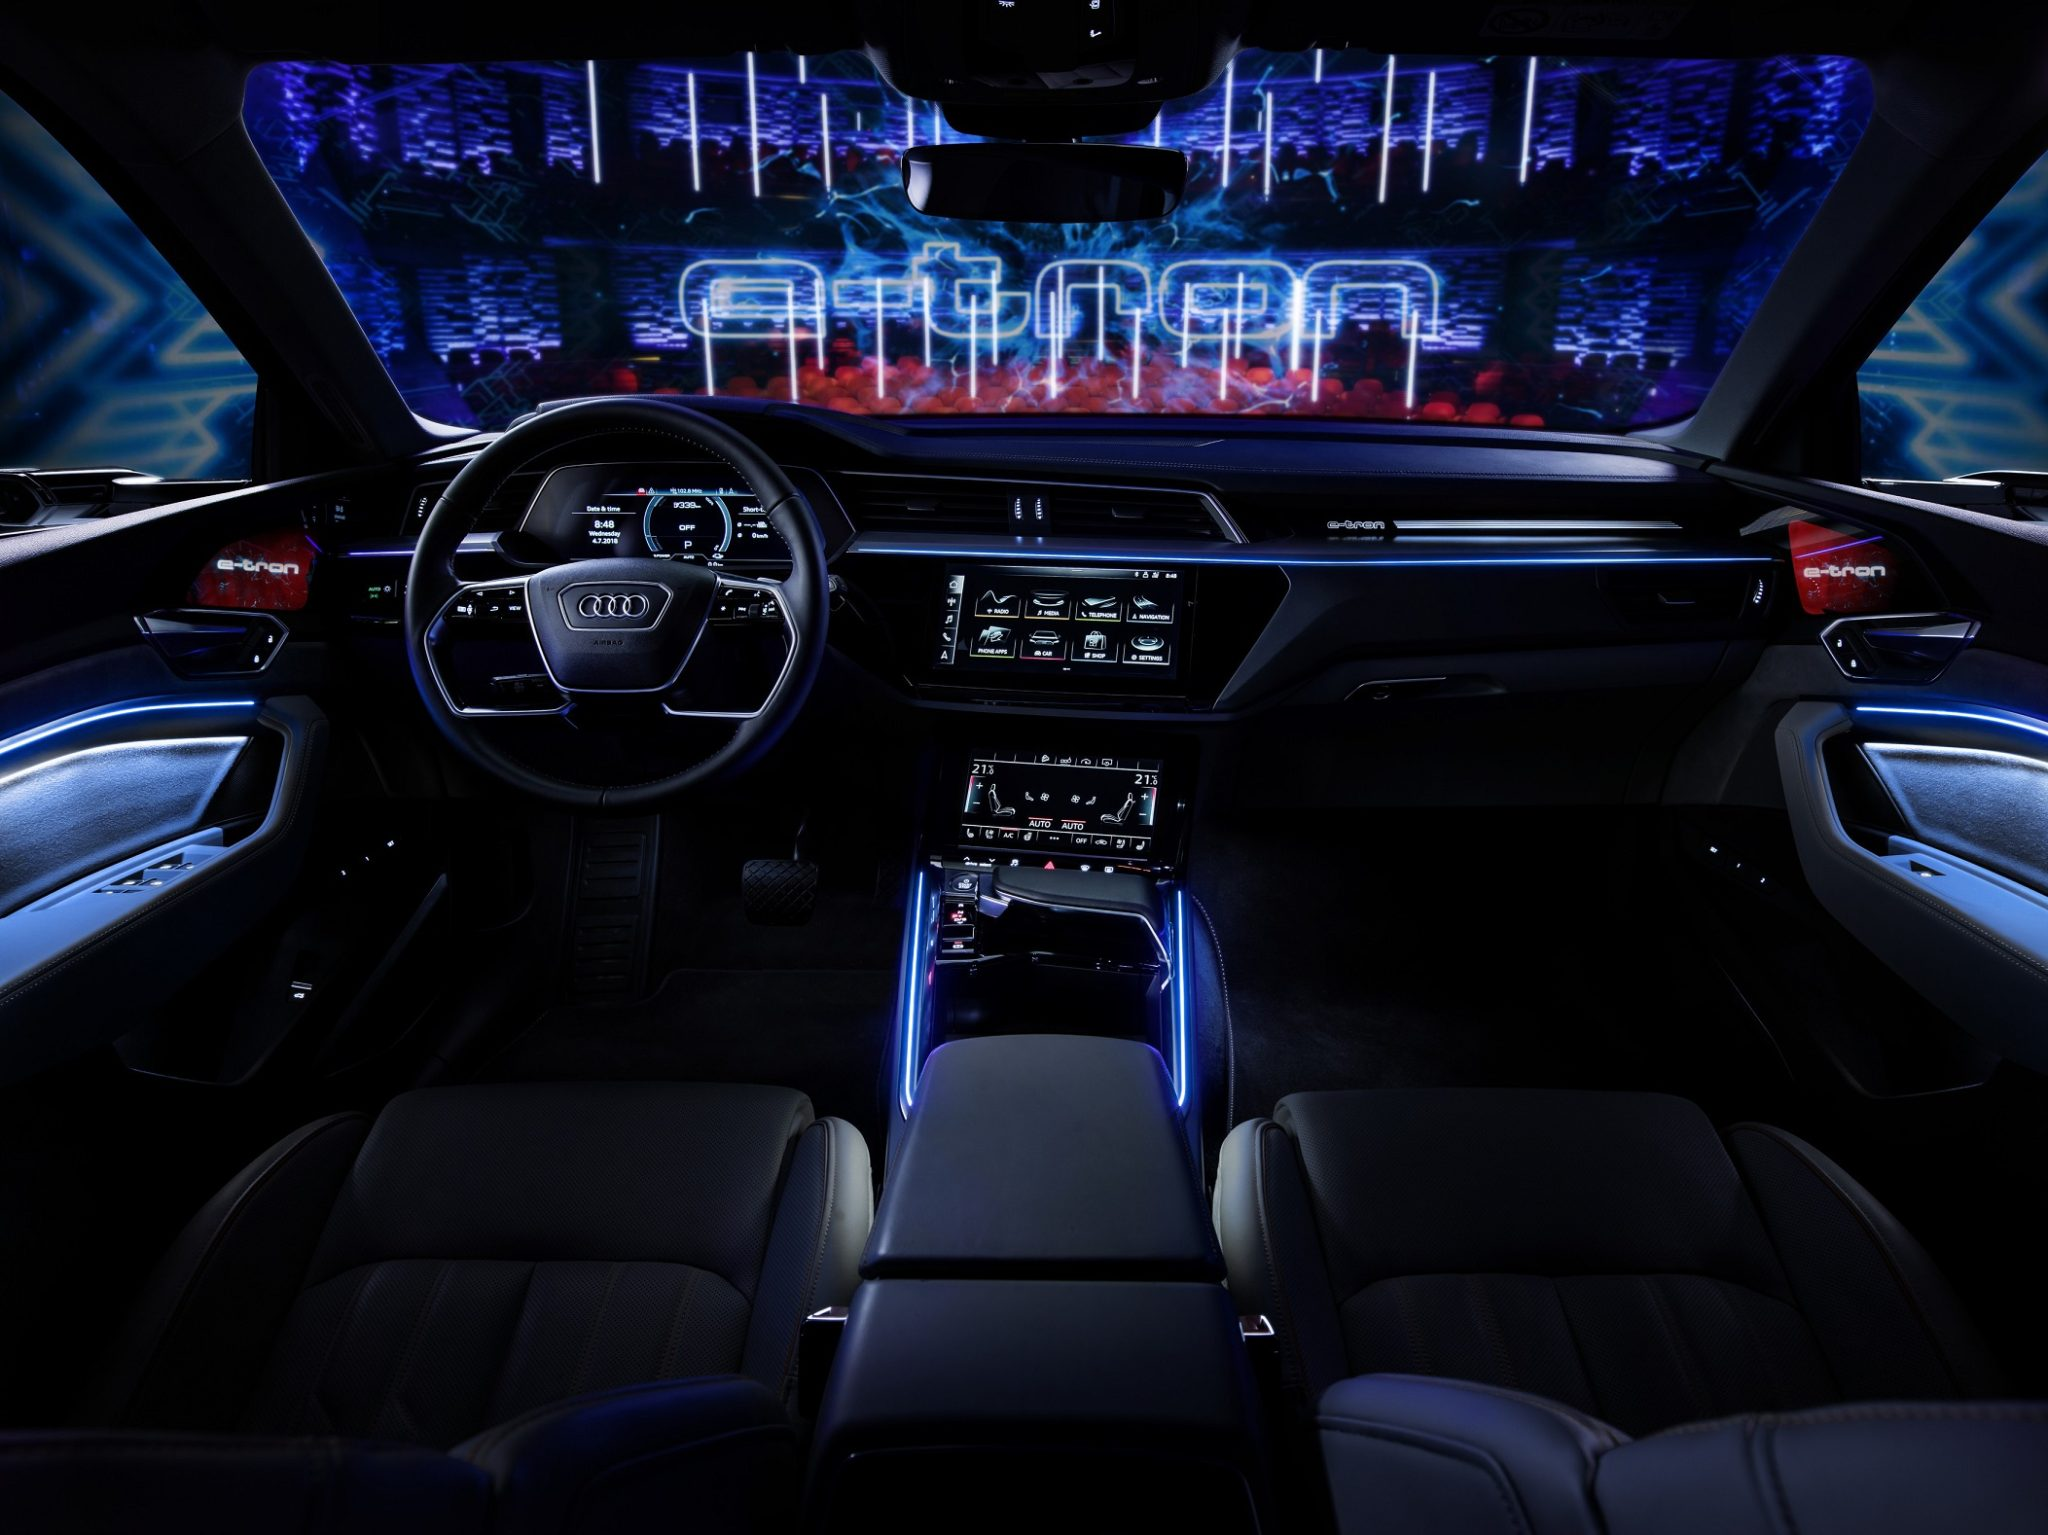 YOUR WISH IS MY COMMAND – AMAZON ALEXA COMES TO THE NEW AUDI E-TRON